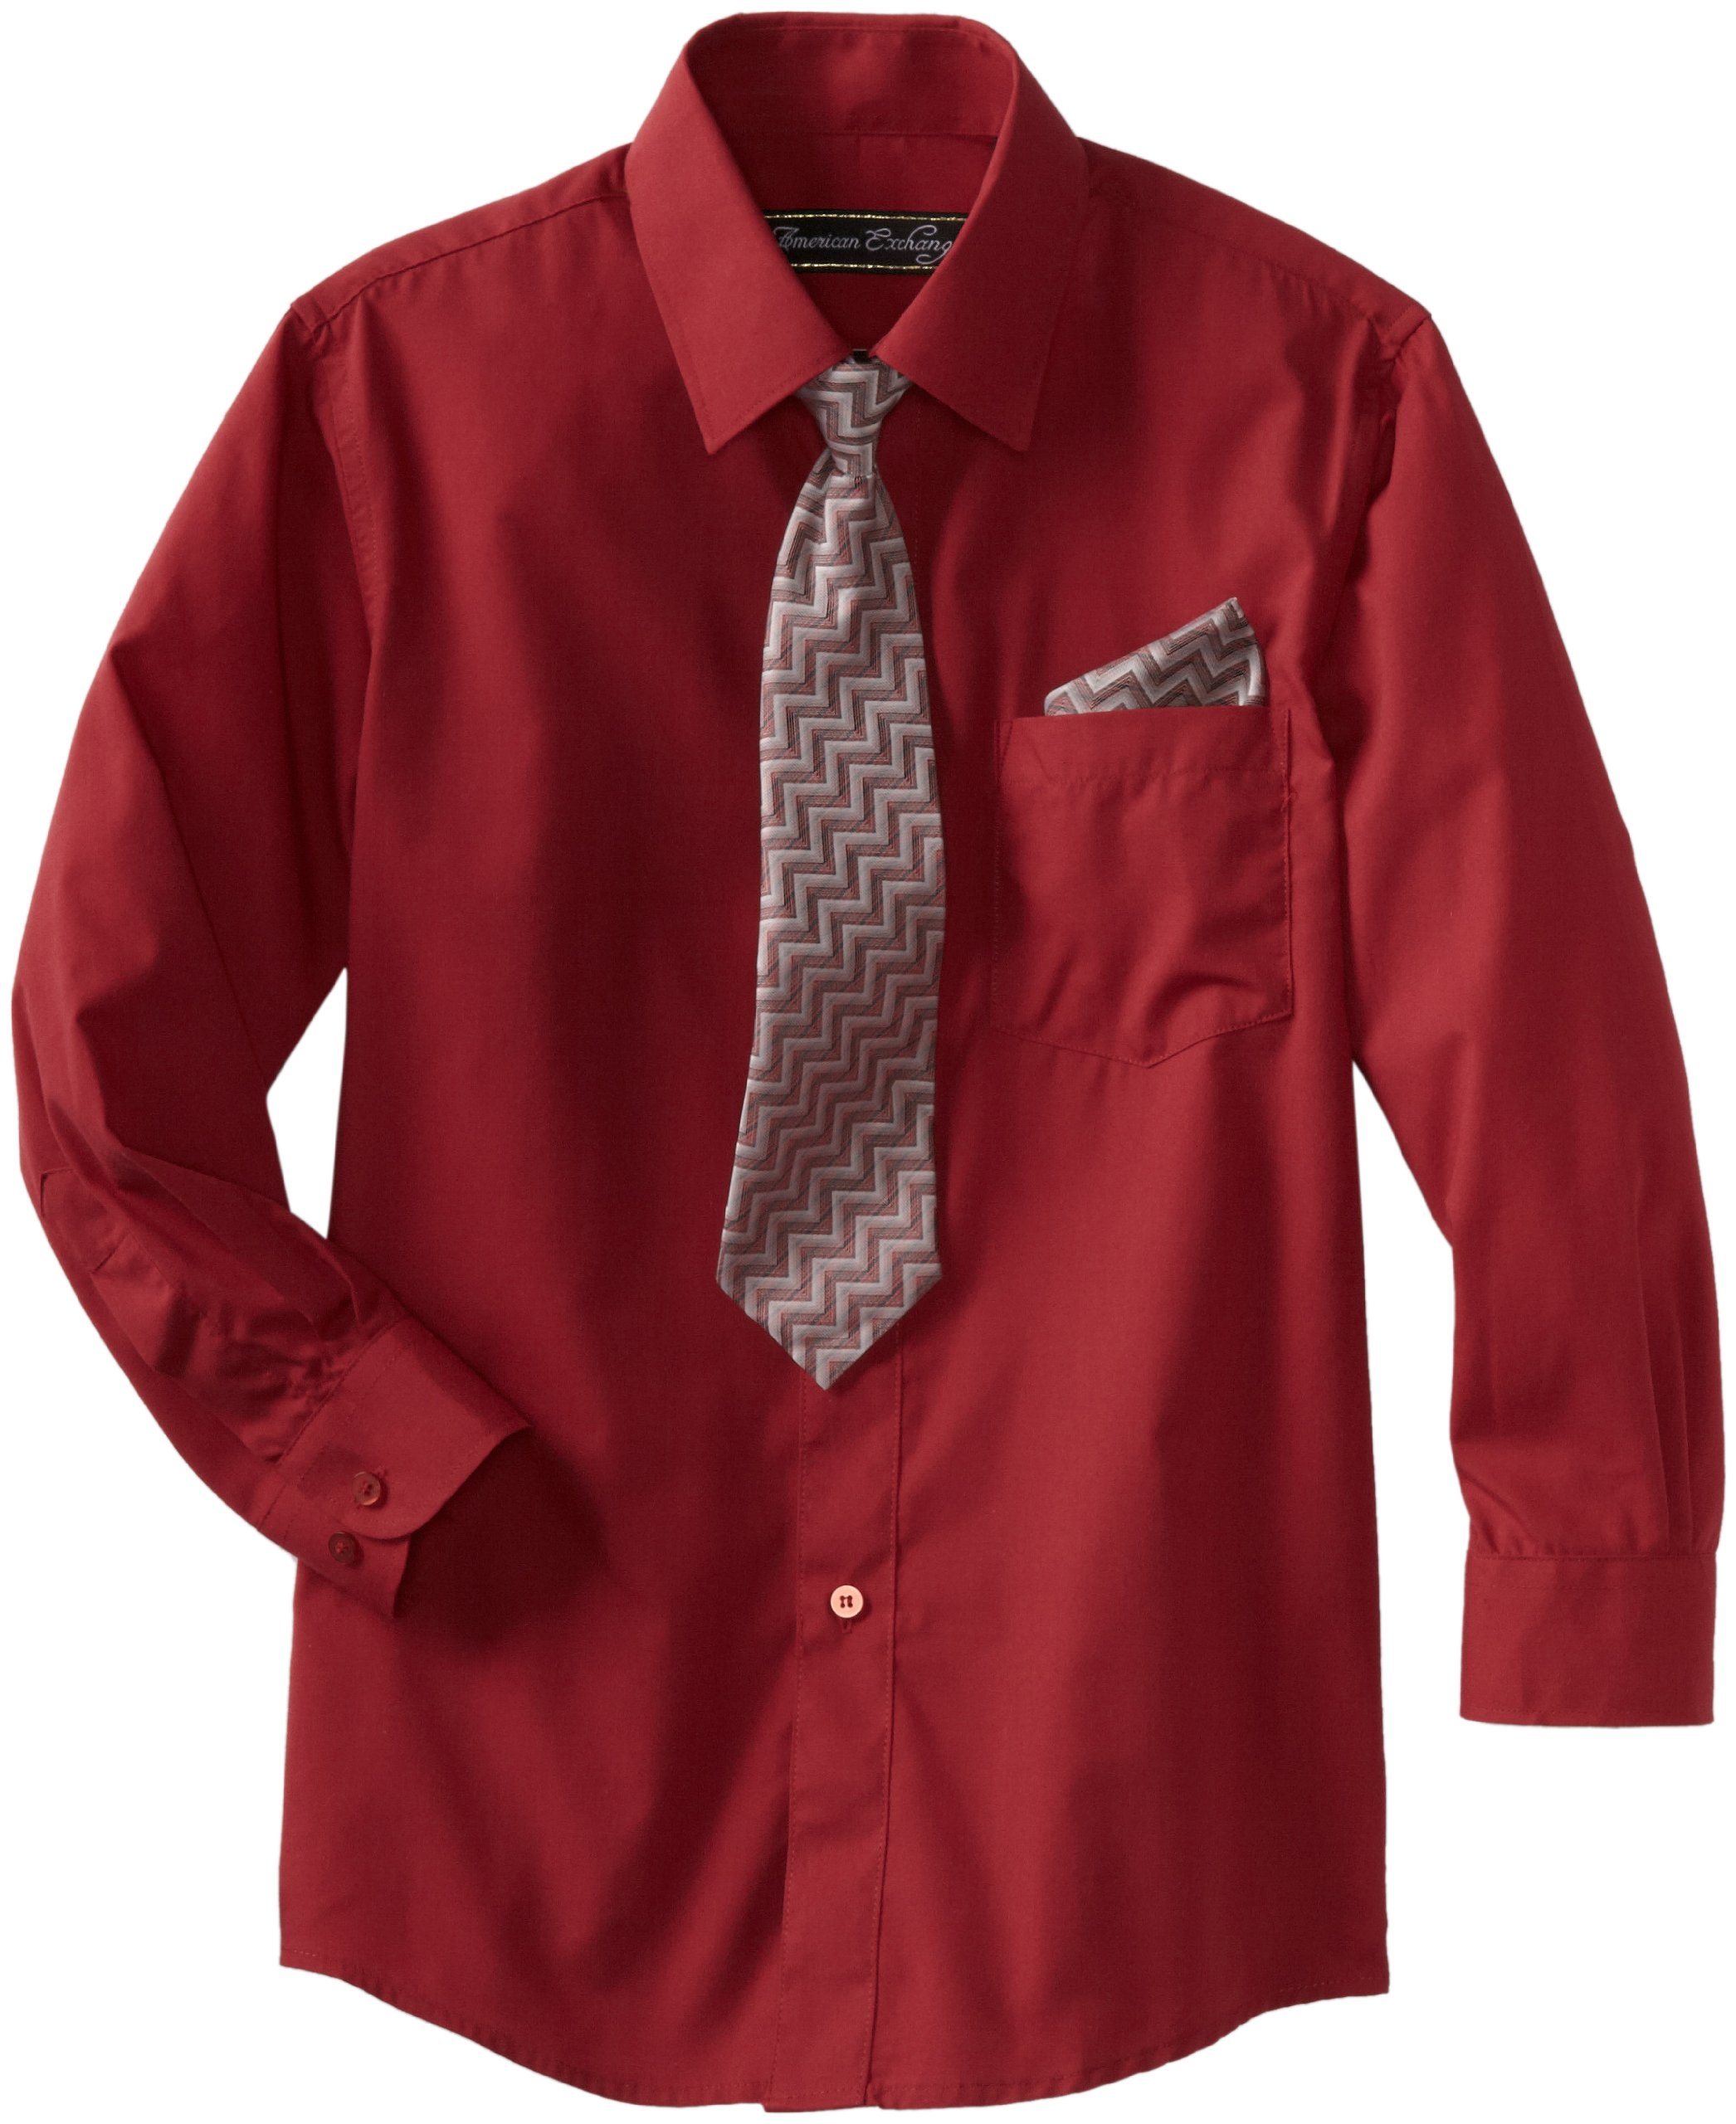 American Exchange Big Boys' Dress Shirt with Tie and Pocket Square, Burgundy, 10